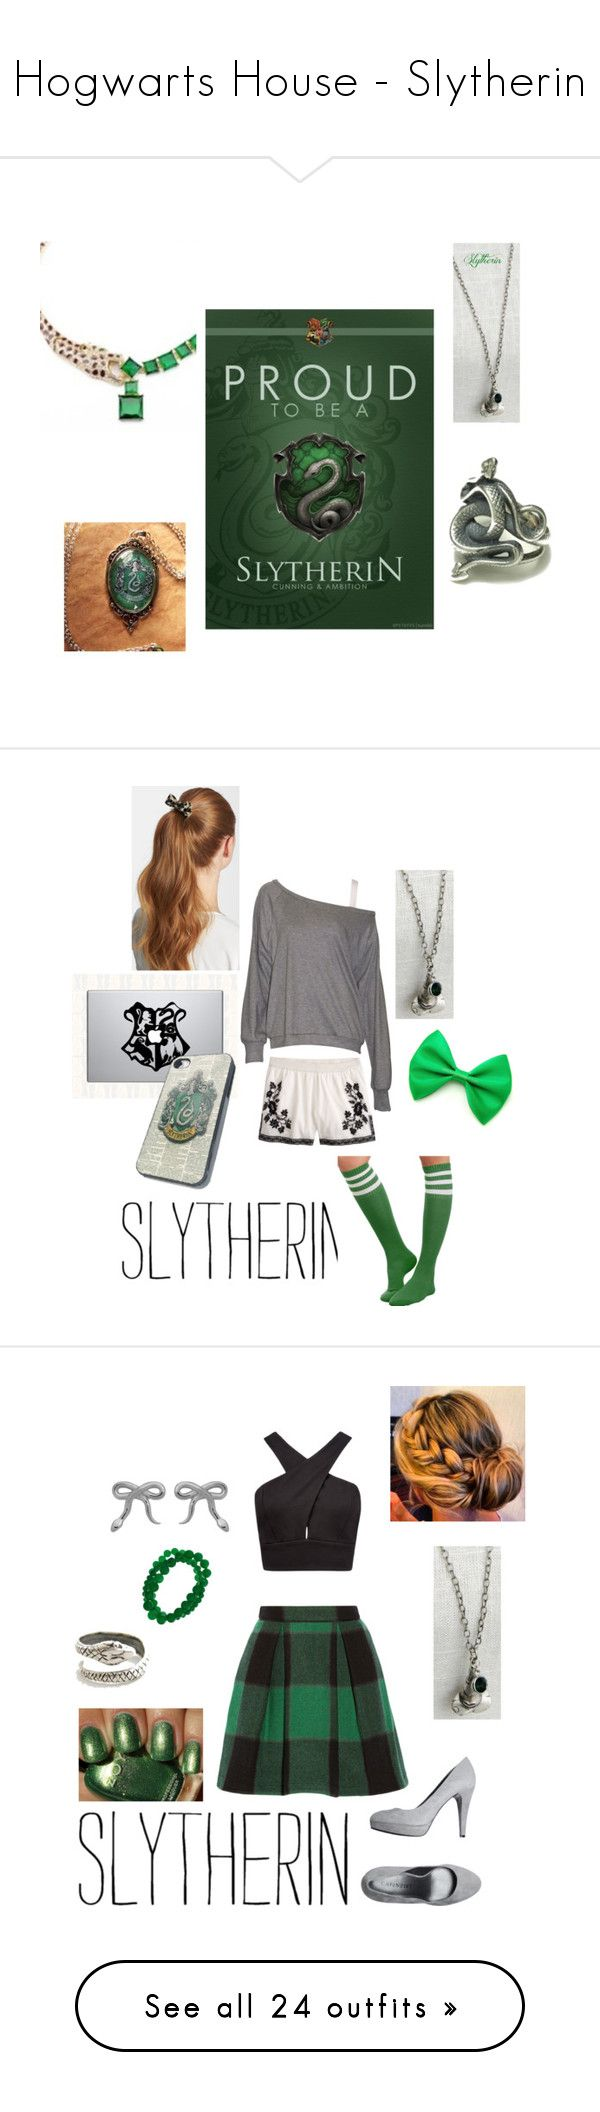 """""""Hogwarts House - Slytherin"""" by briony-jae ❤ liked on Polyvore featuring harry potter, slytherin, fillers, hogwarts, backgrounds, borders, effect, picture frame, J.Crew and LnA"""